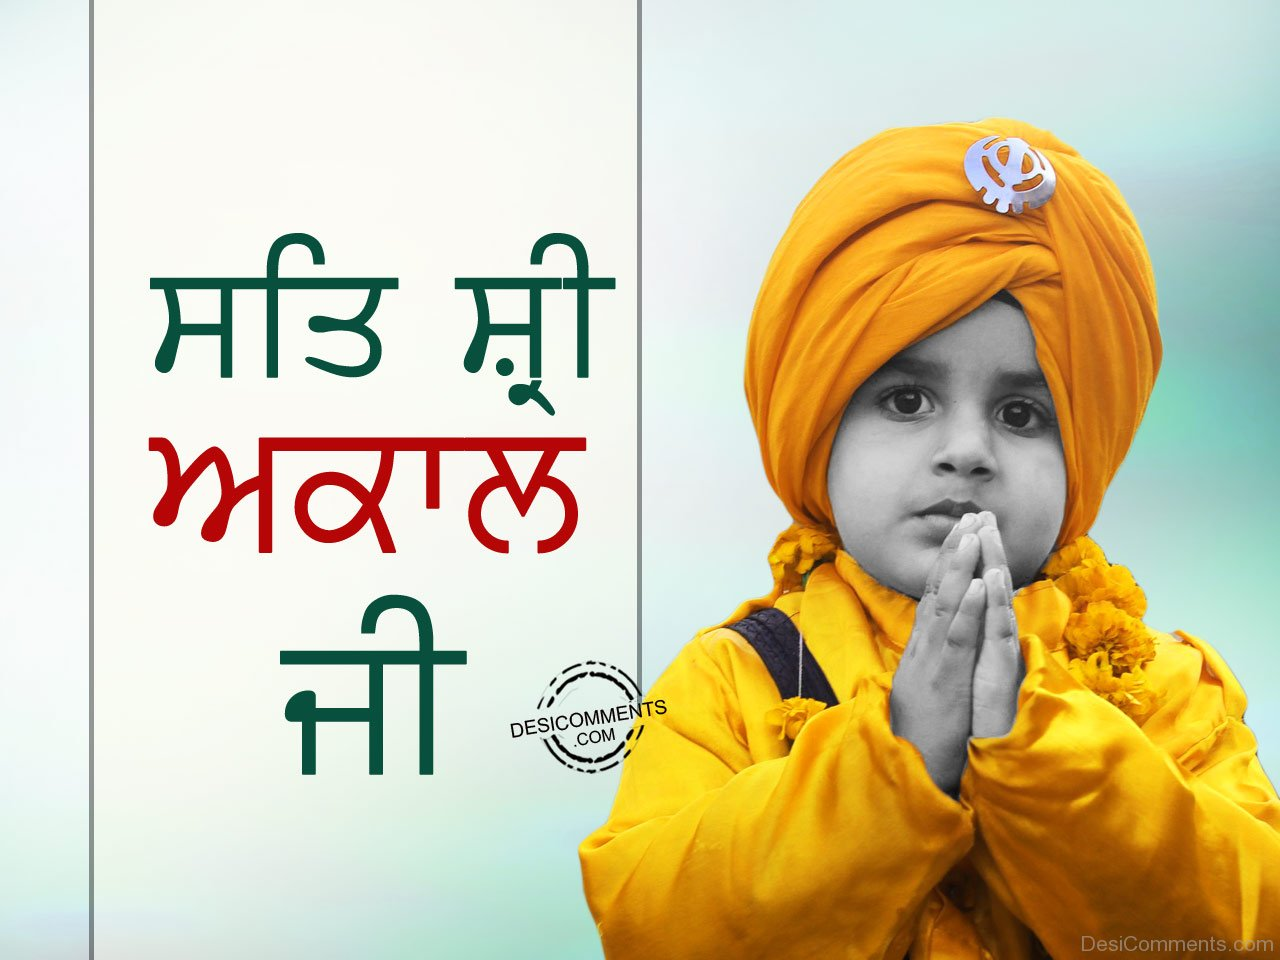 s at sri akal with sikh child - desicomments